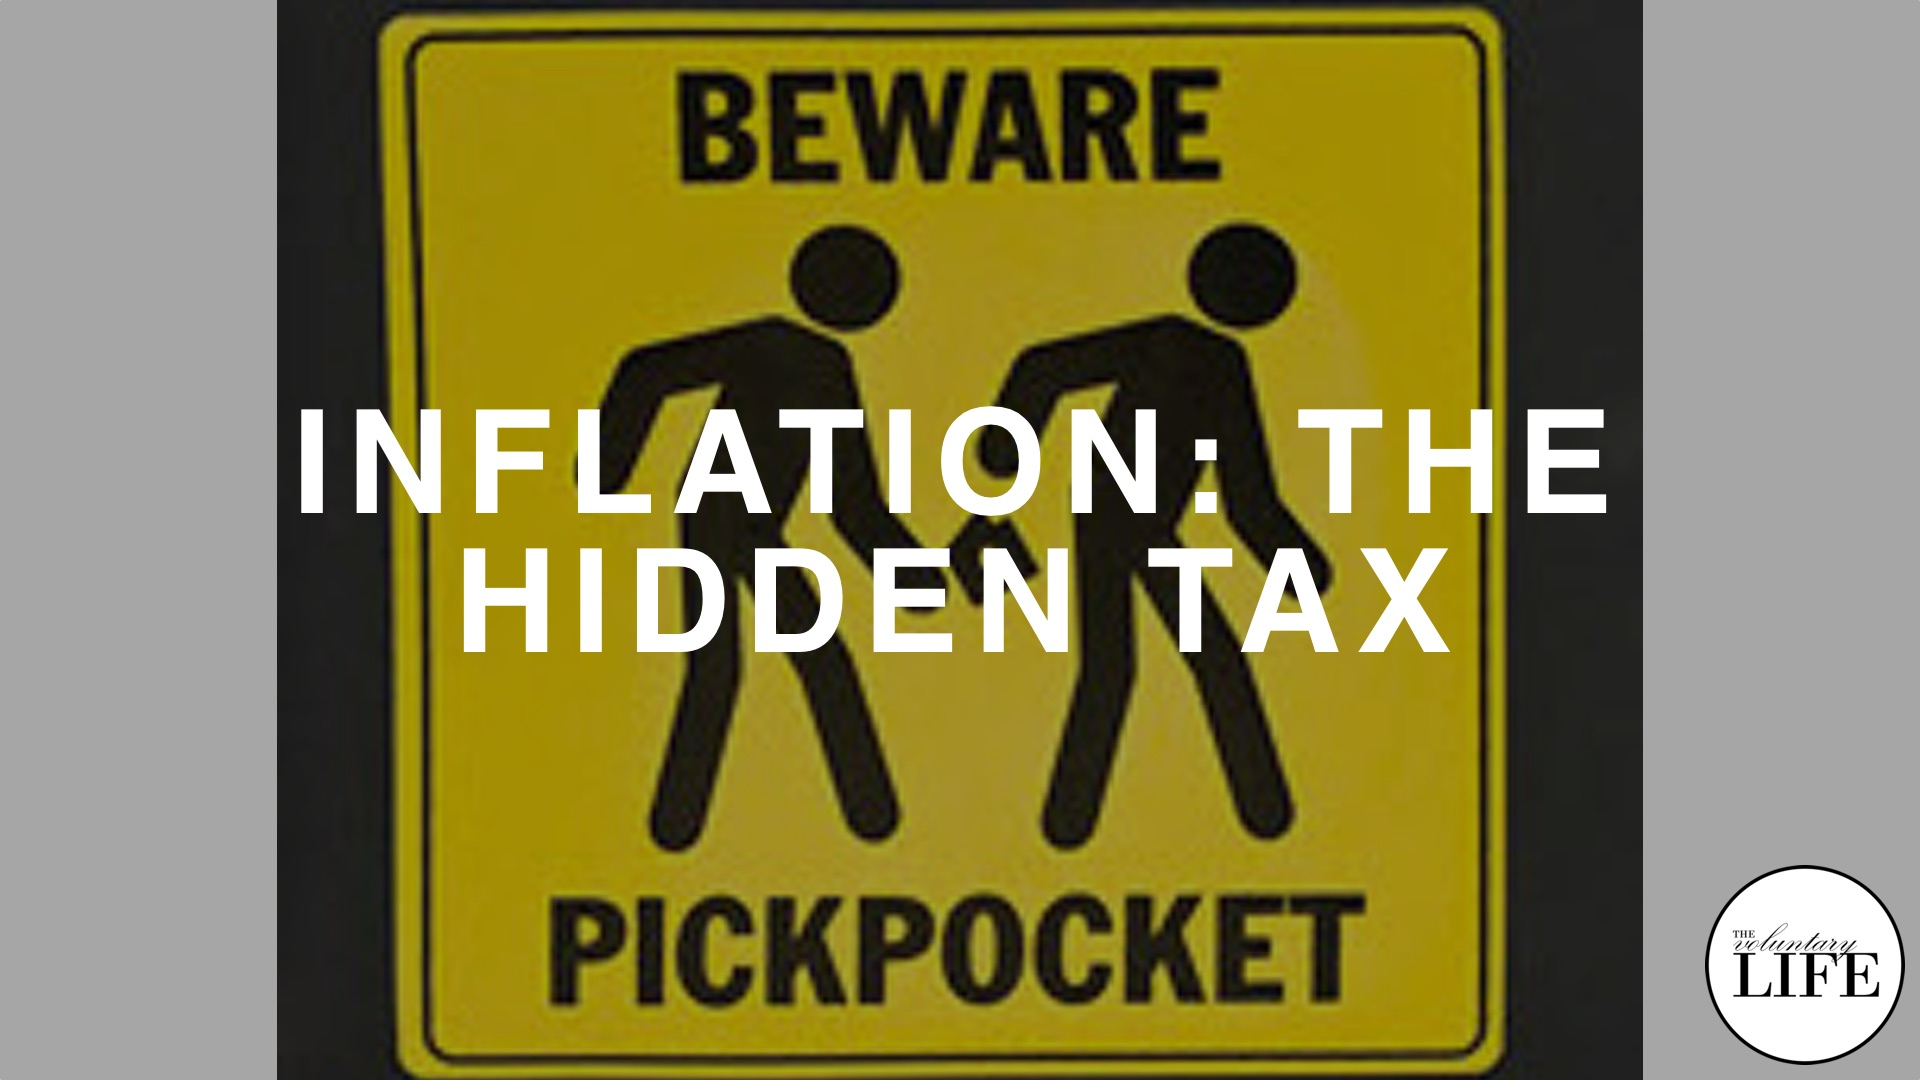 69 Inflation: The Hidden Tax